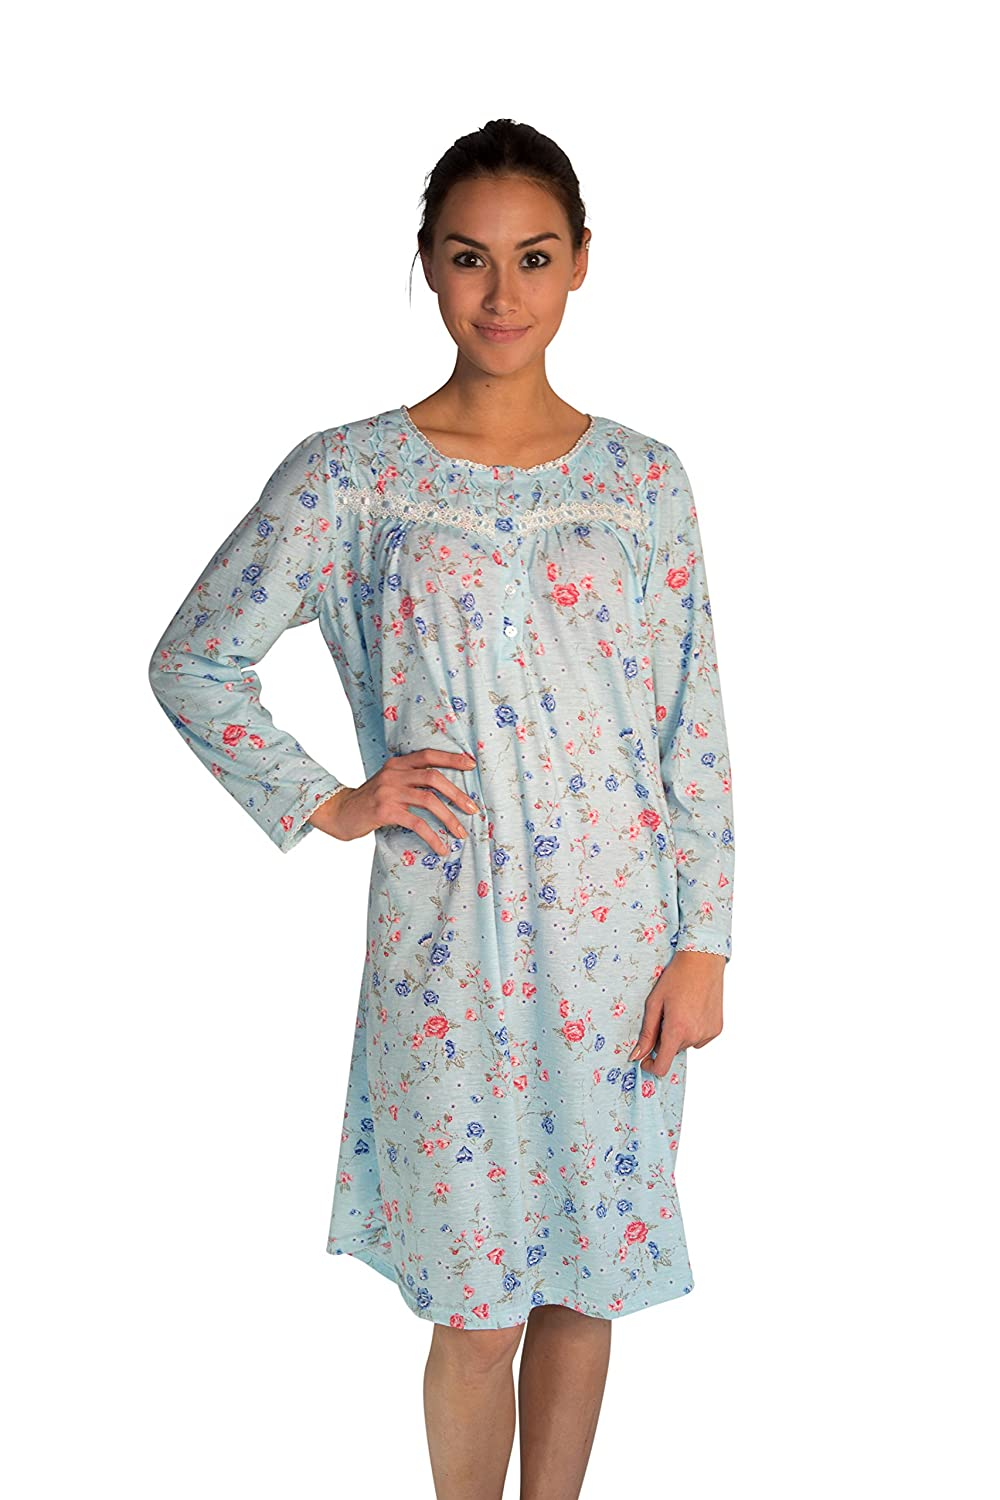 JOTW Long Sleeve Cotton Nightgown Dress with Flower-Print (649) at Amazon  Women s Clothing store  fe9605904